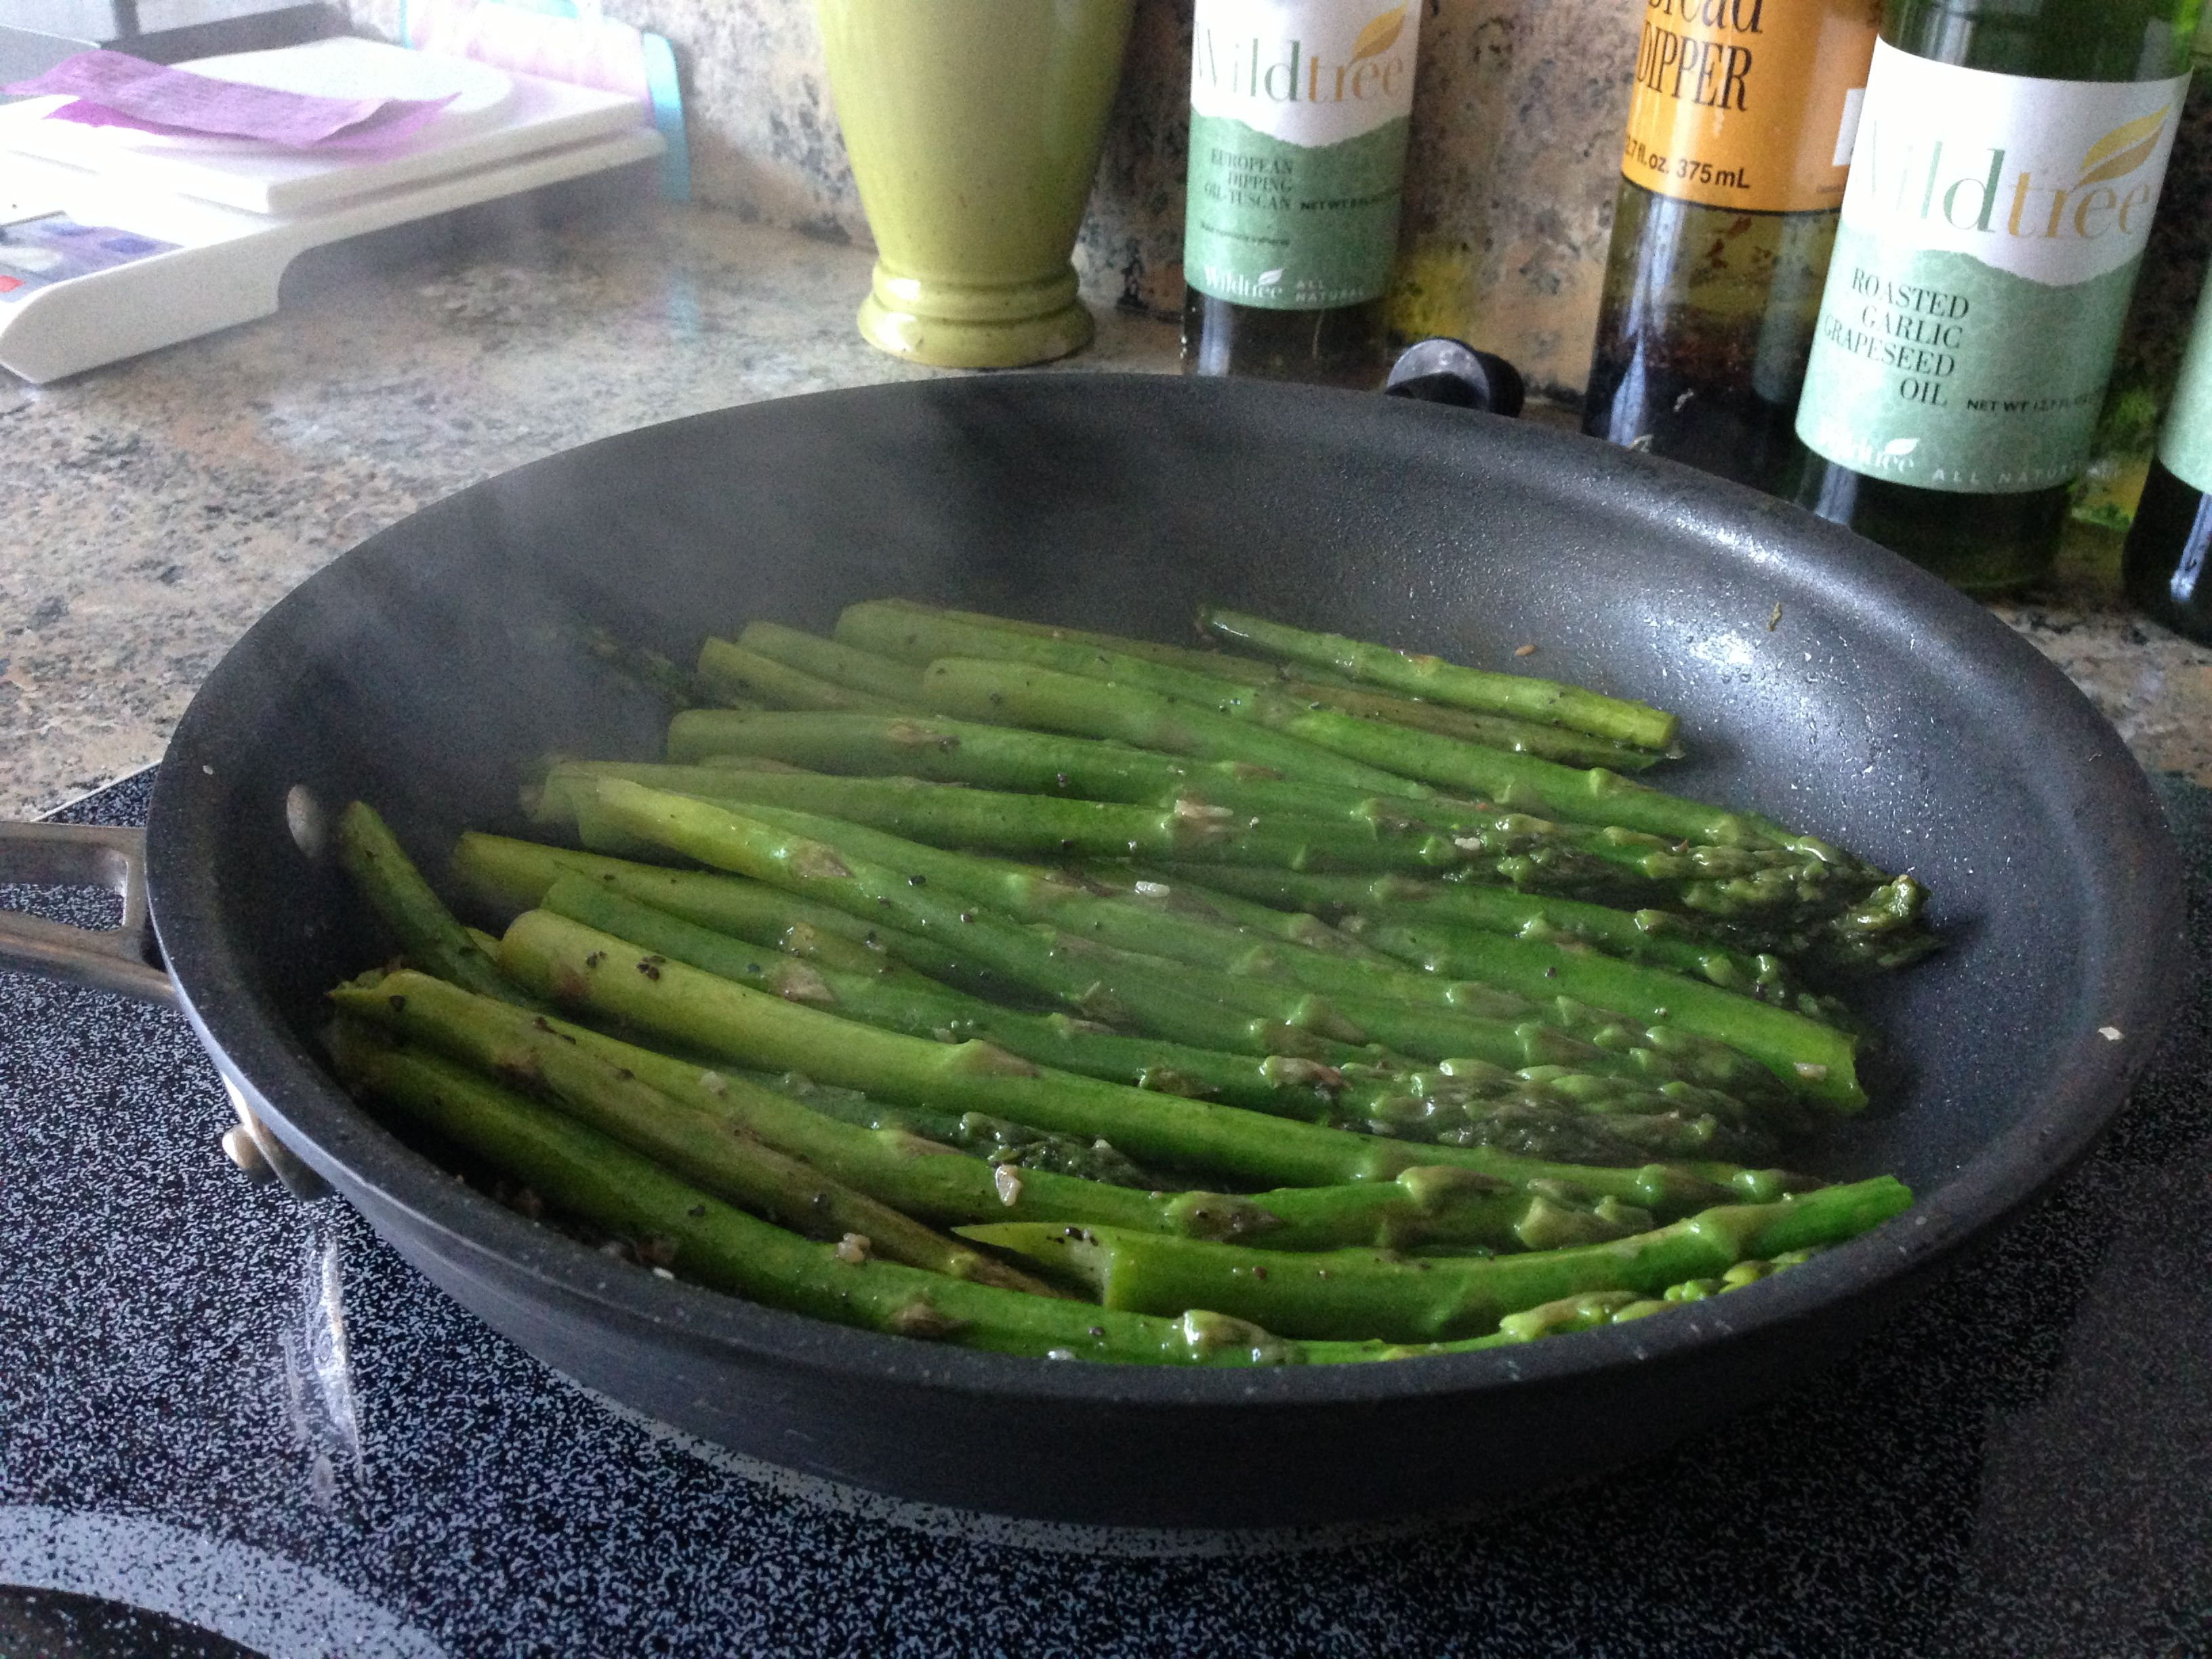 Asparagus sautéed with Wildtree Roasted Garlic Grapeseed Oil and Wildtree Rancher Steak Rub. Even My 2 year old ate this and asked for seconds! Get these ingredients now at:  Www.mywildtree.com/kellyolin